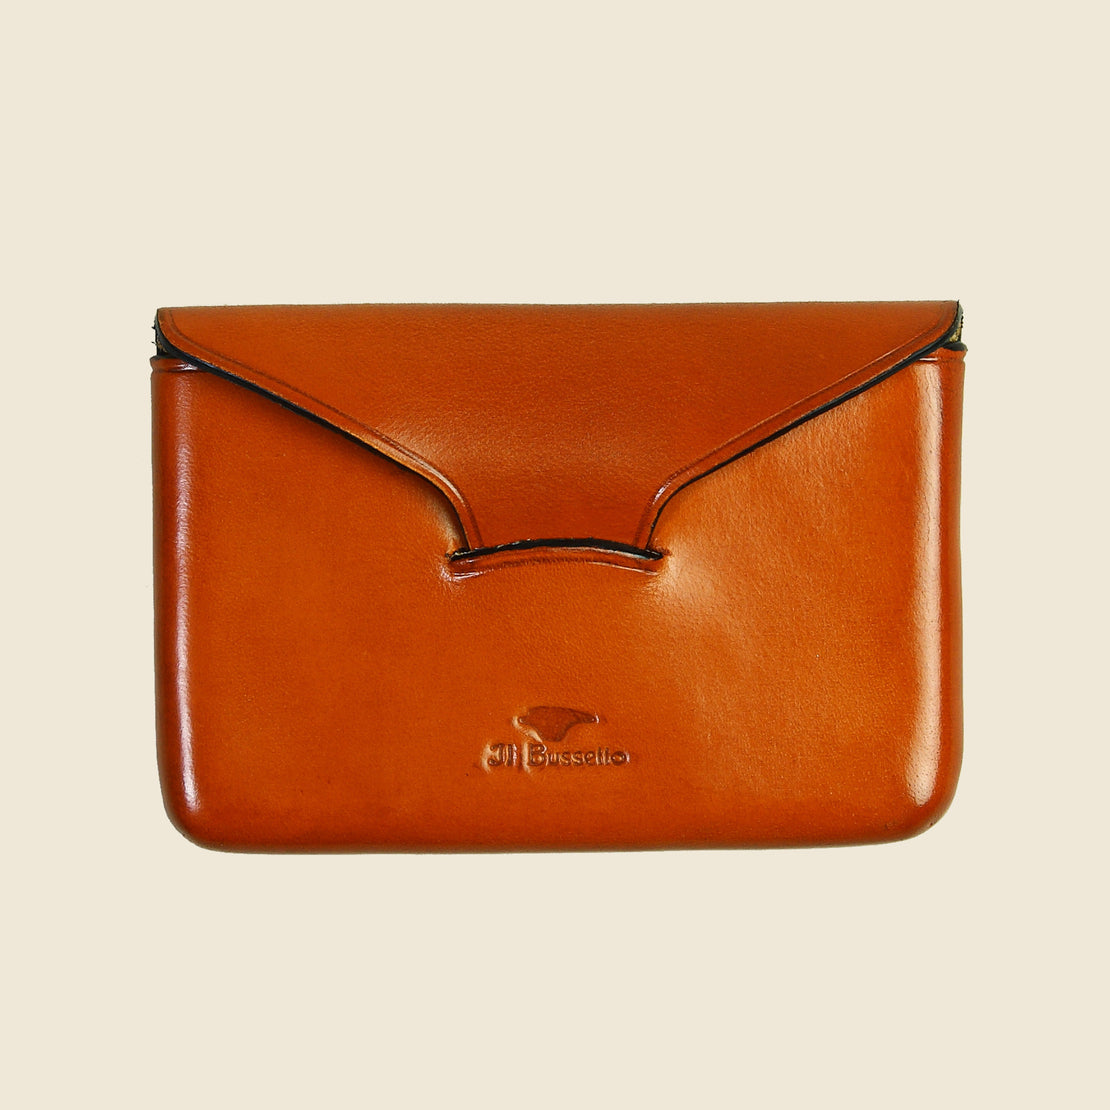 Il Bussetto Business Card Holder - Orange